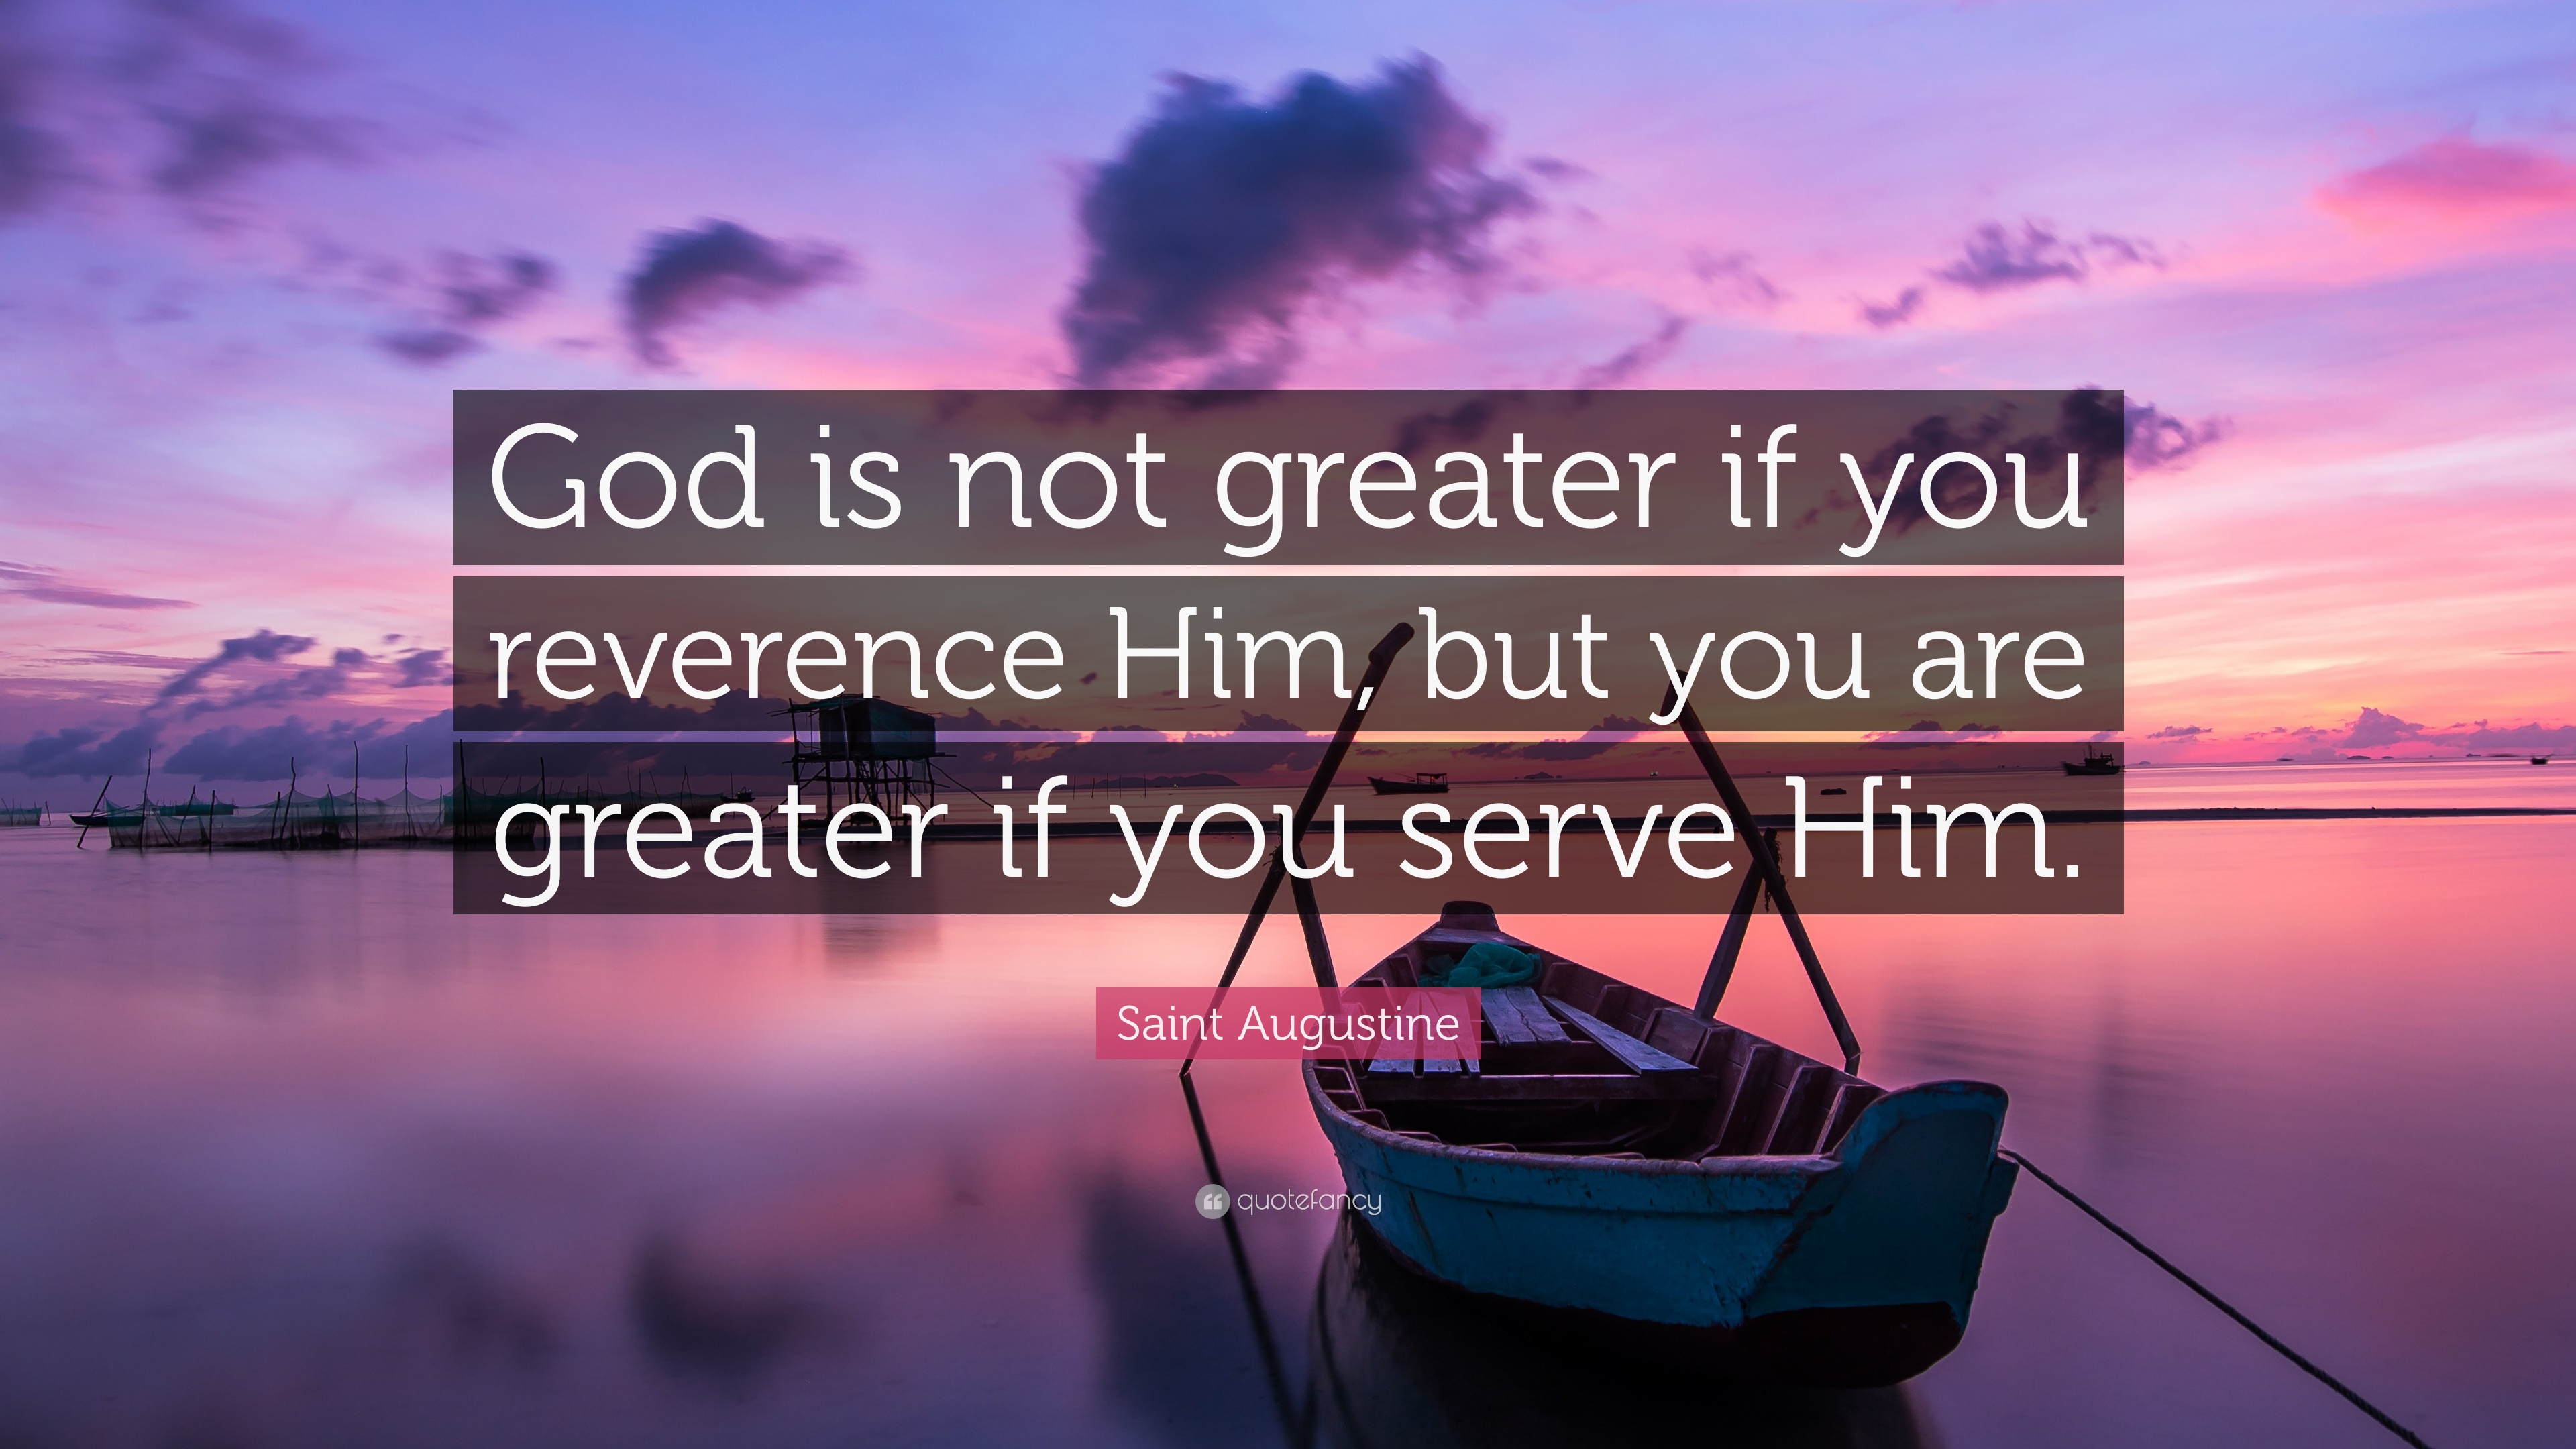 Saint Augustine Quote: God is not greater if you